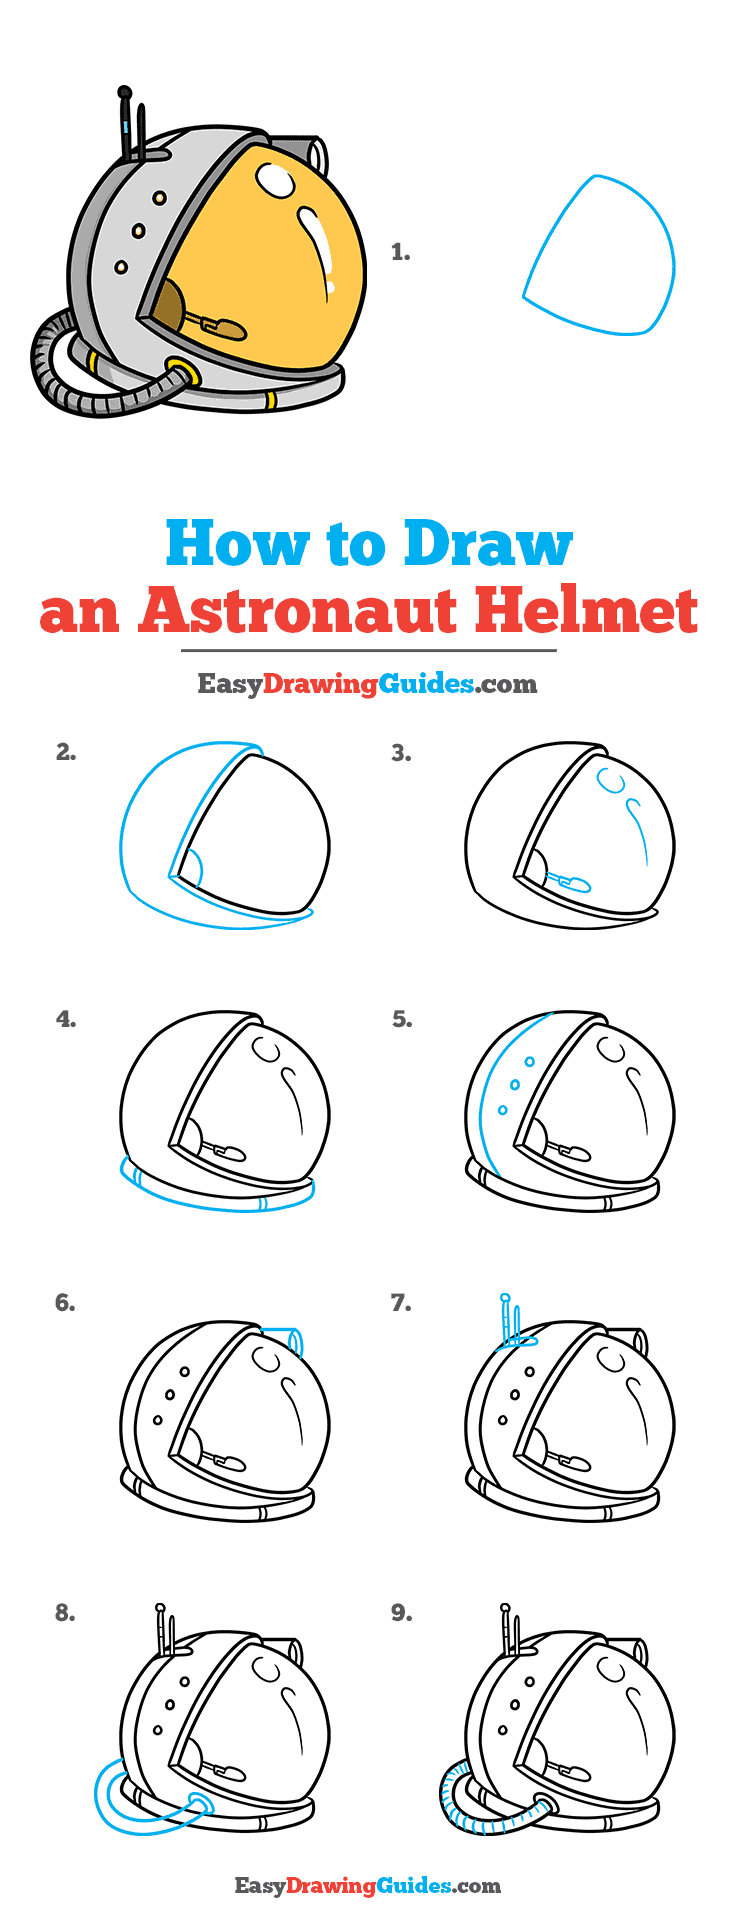 How to Draw Astronaut Helmet